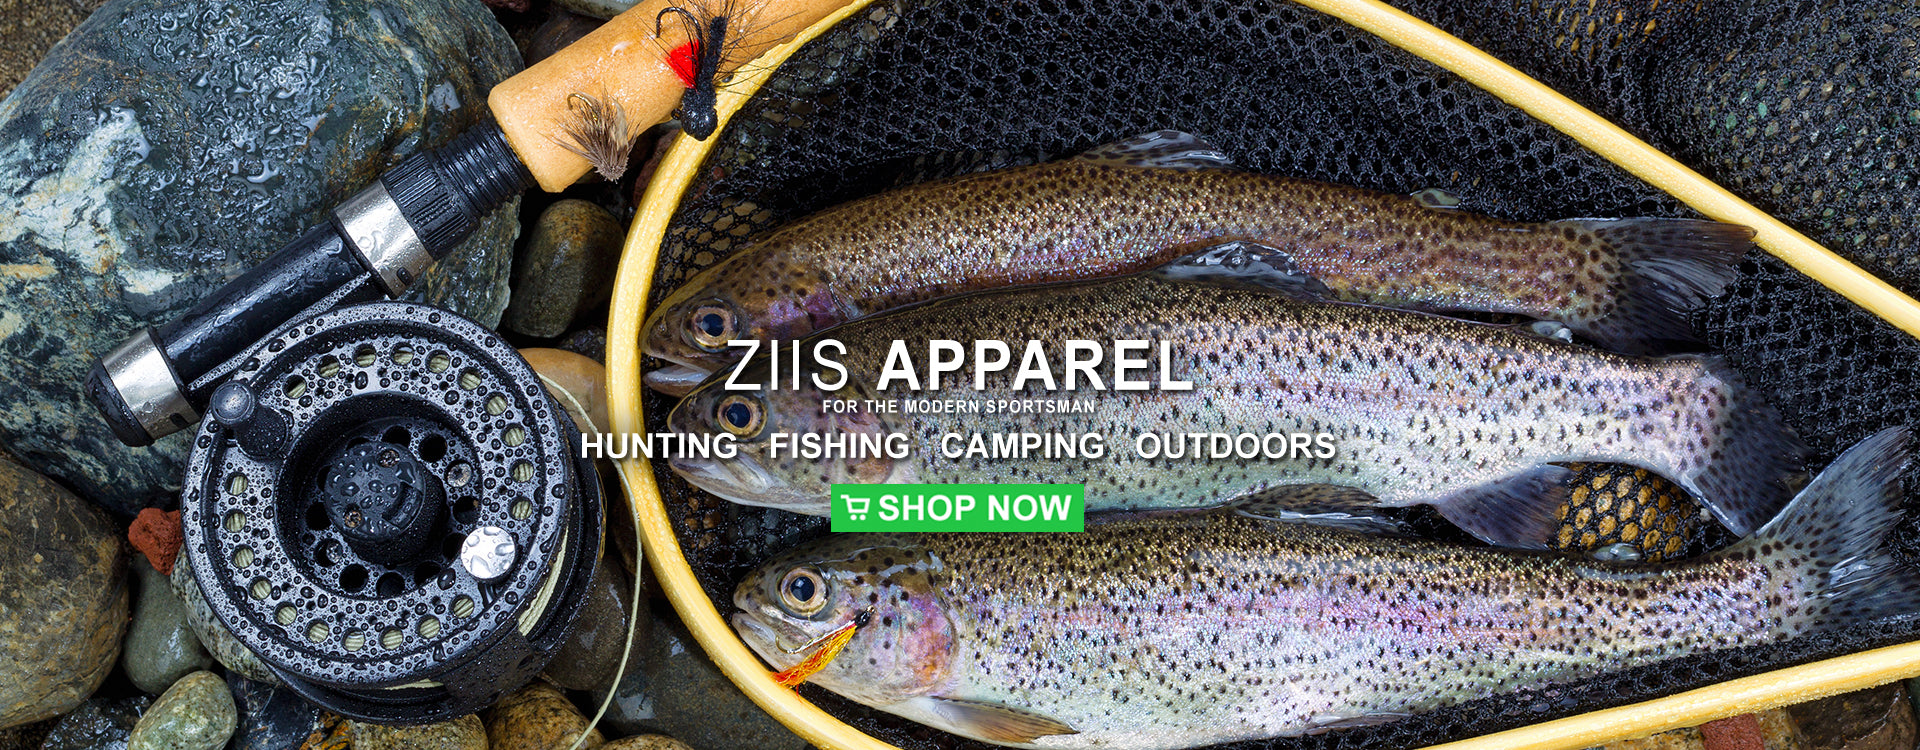 Ziis Apparel fly fishing rainbow trout